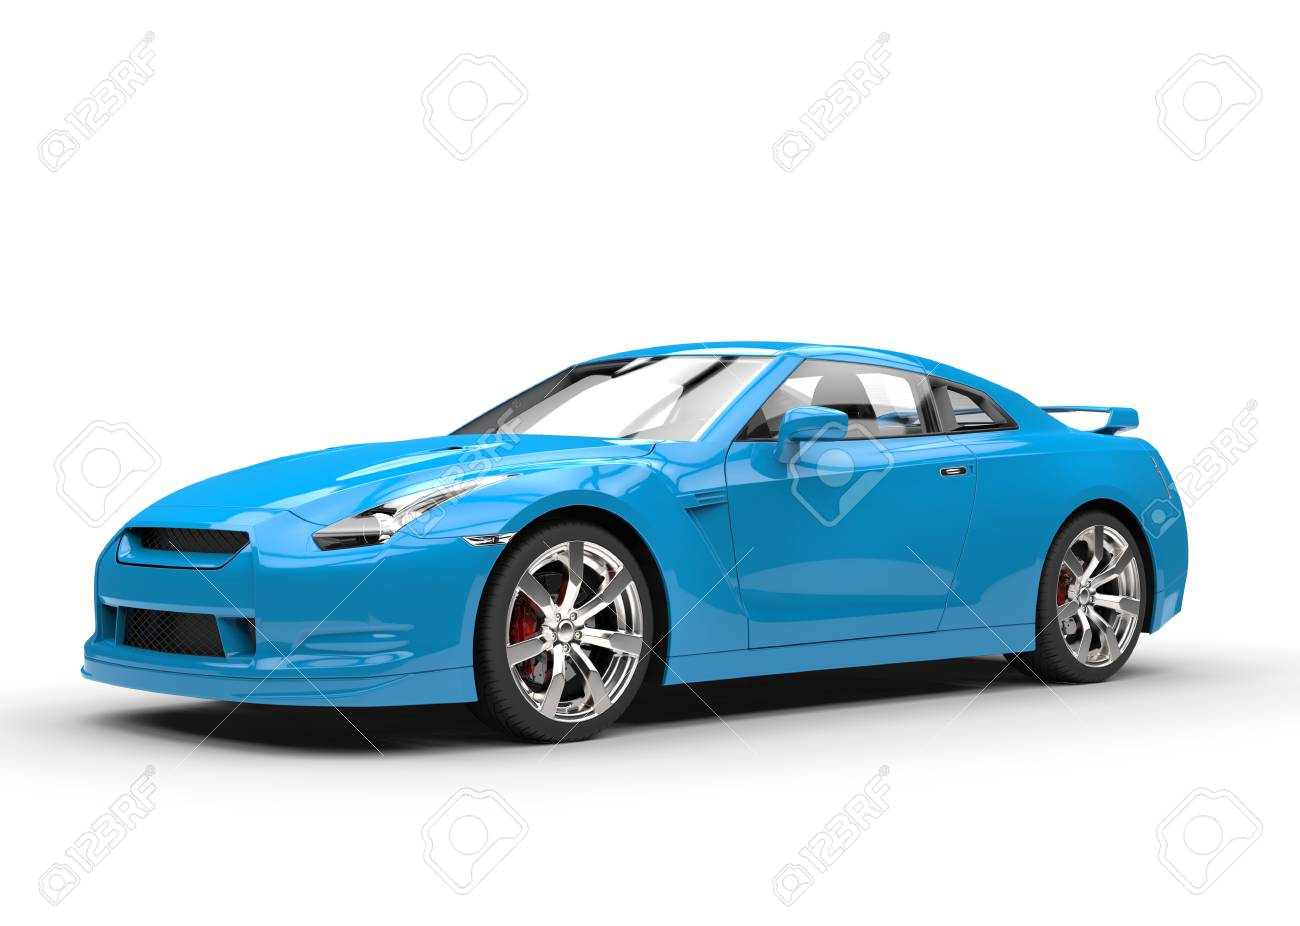 Light Blue Cool Car Stock Photo Picture And Royalty Free Image - Cool car models